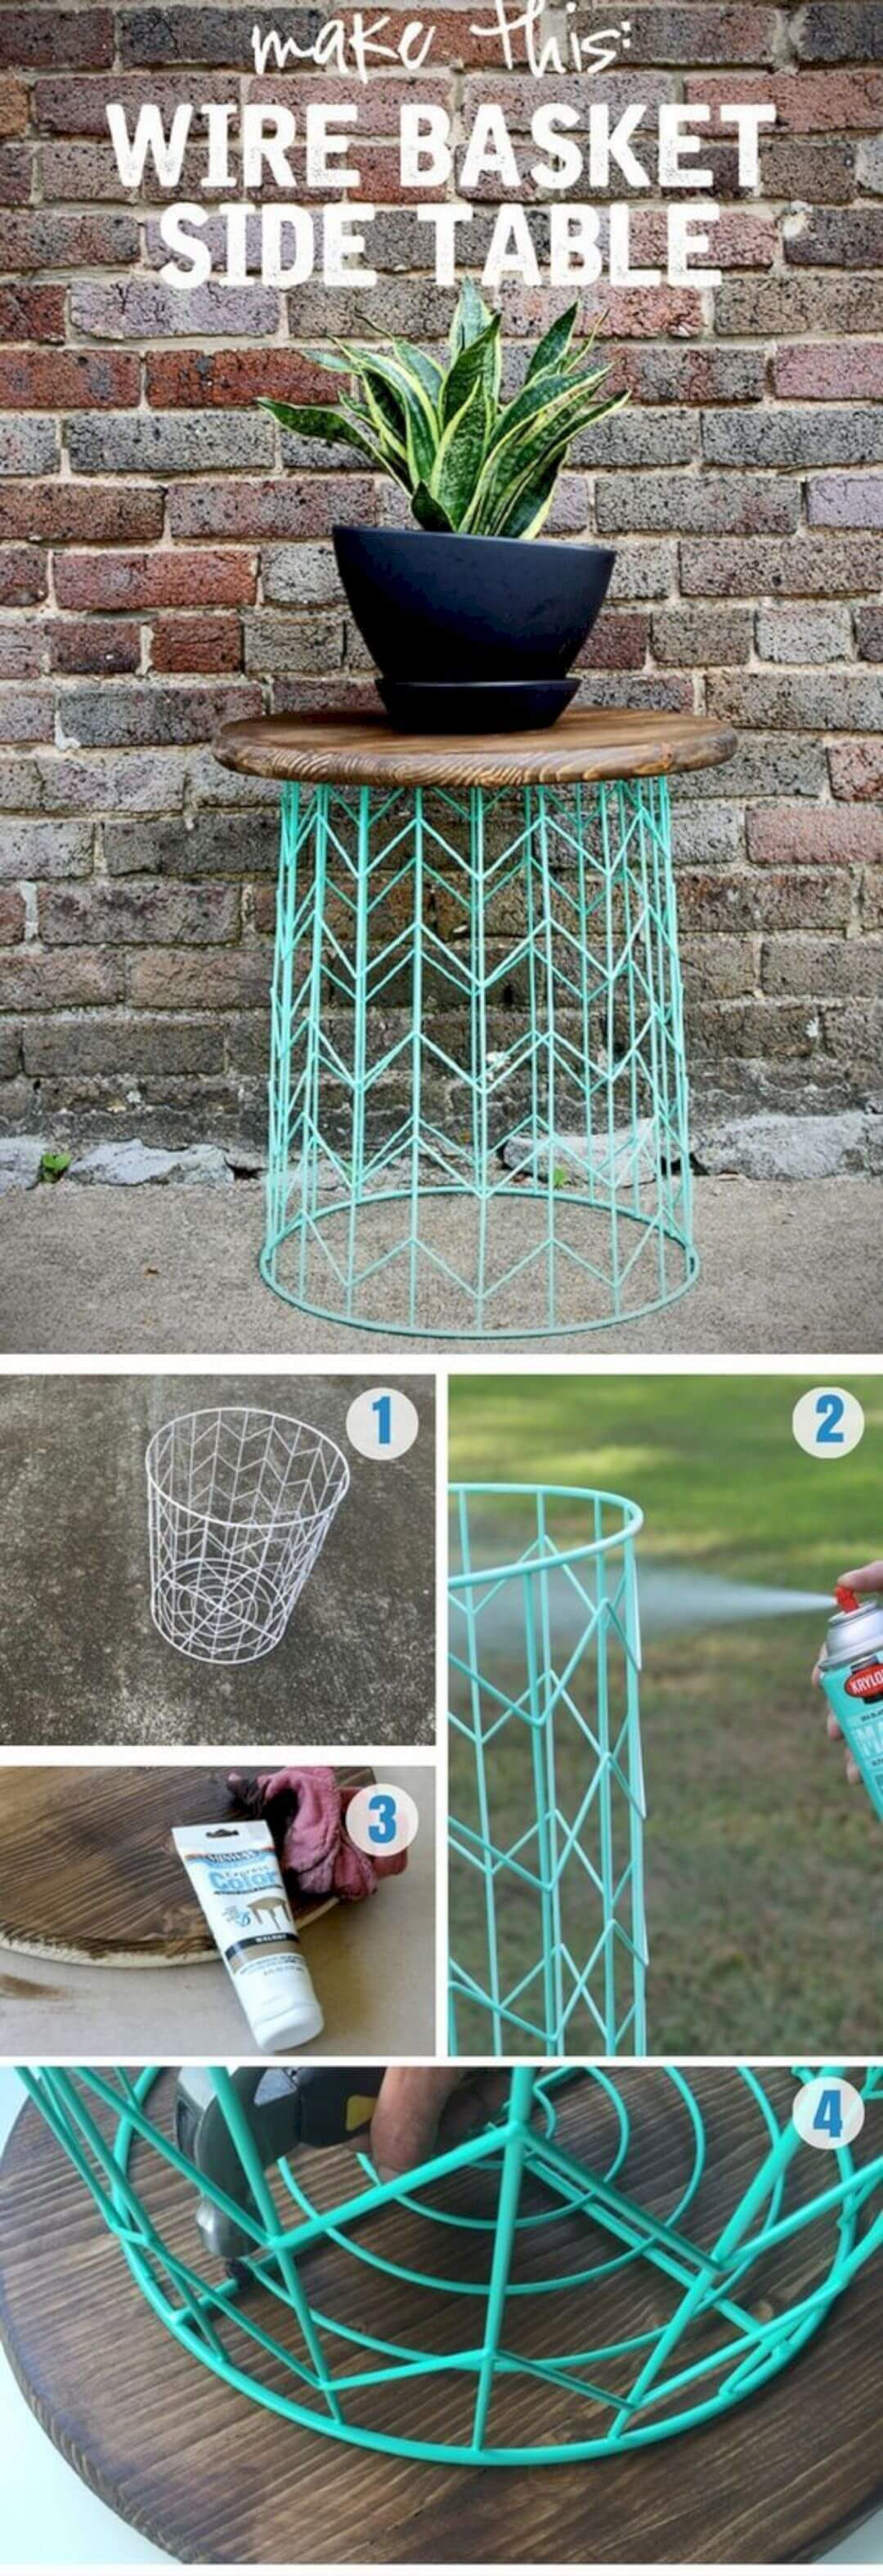 DIY Colorido Porche y Decoración de Patio Ideas